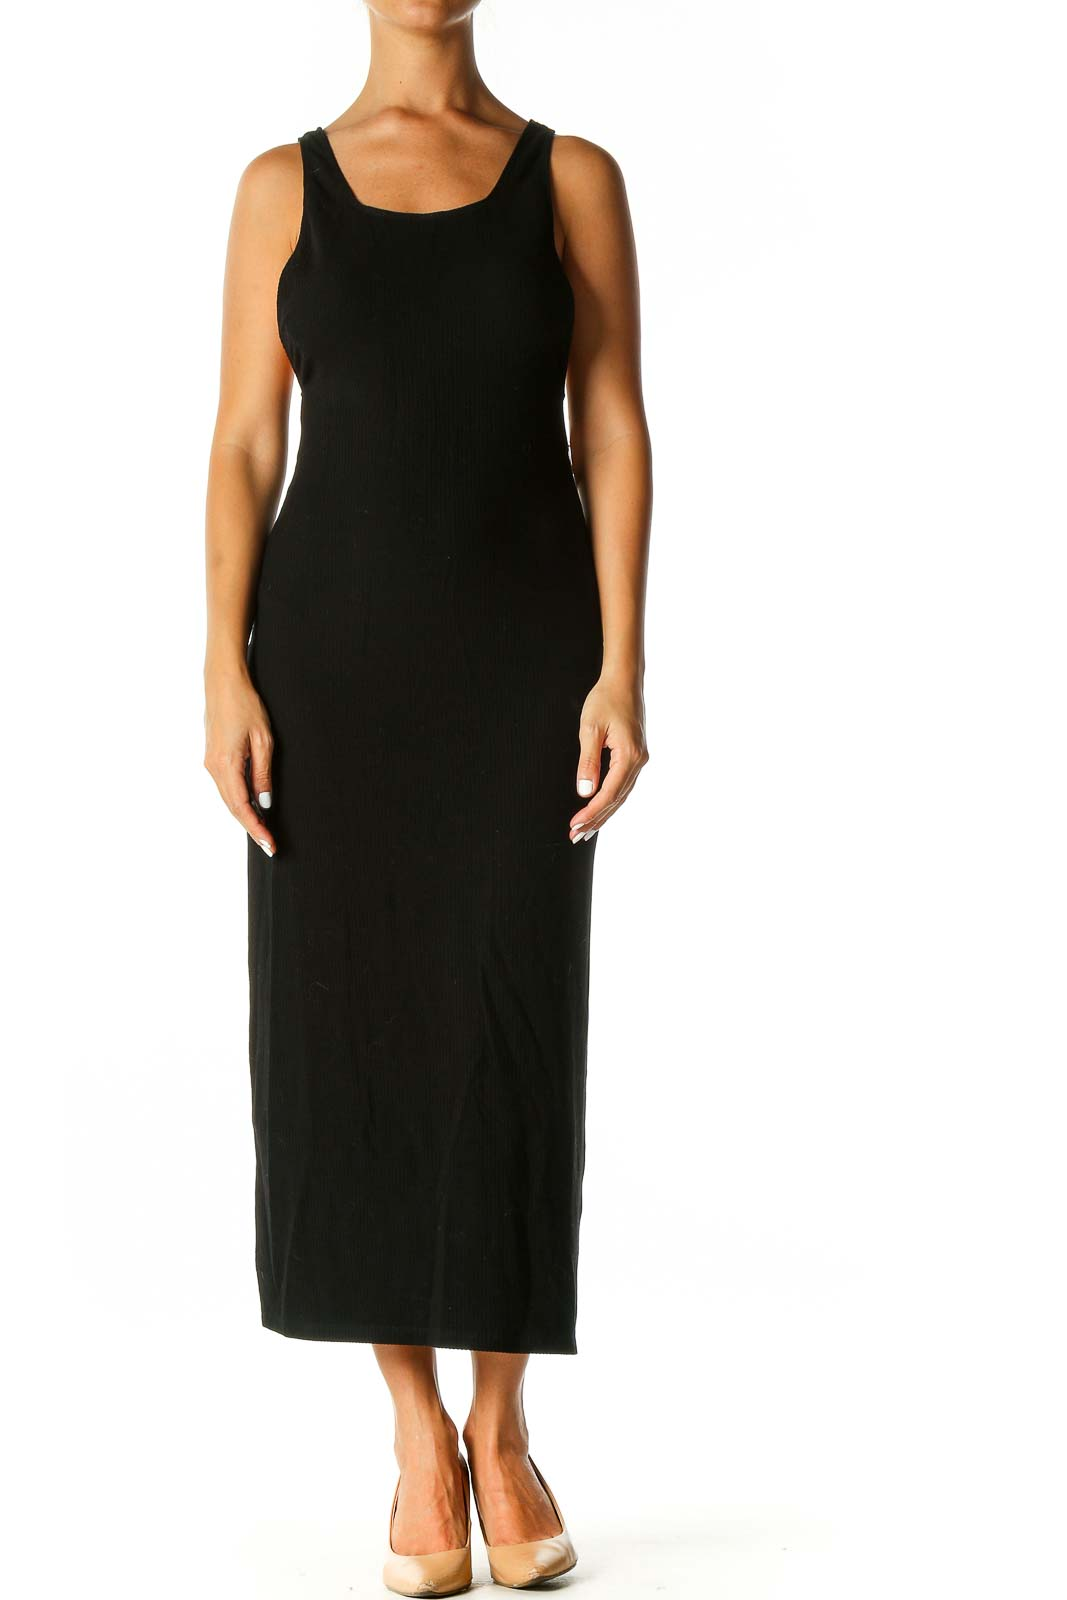 Black Solid Casual Column Dress Front